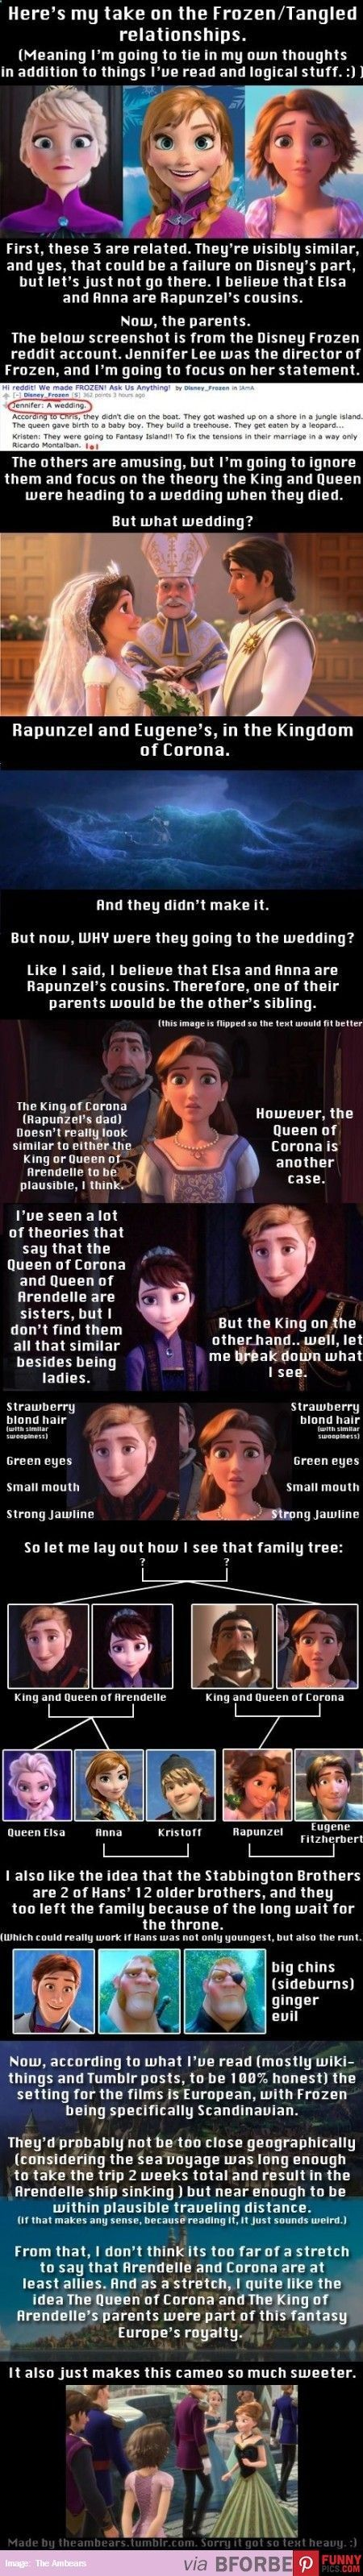 i knew about the other stuff, but not about the King and Queen of Arendelle having tarzan, that means that Elsa and Anna are Tarzans big sisters!